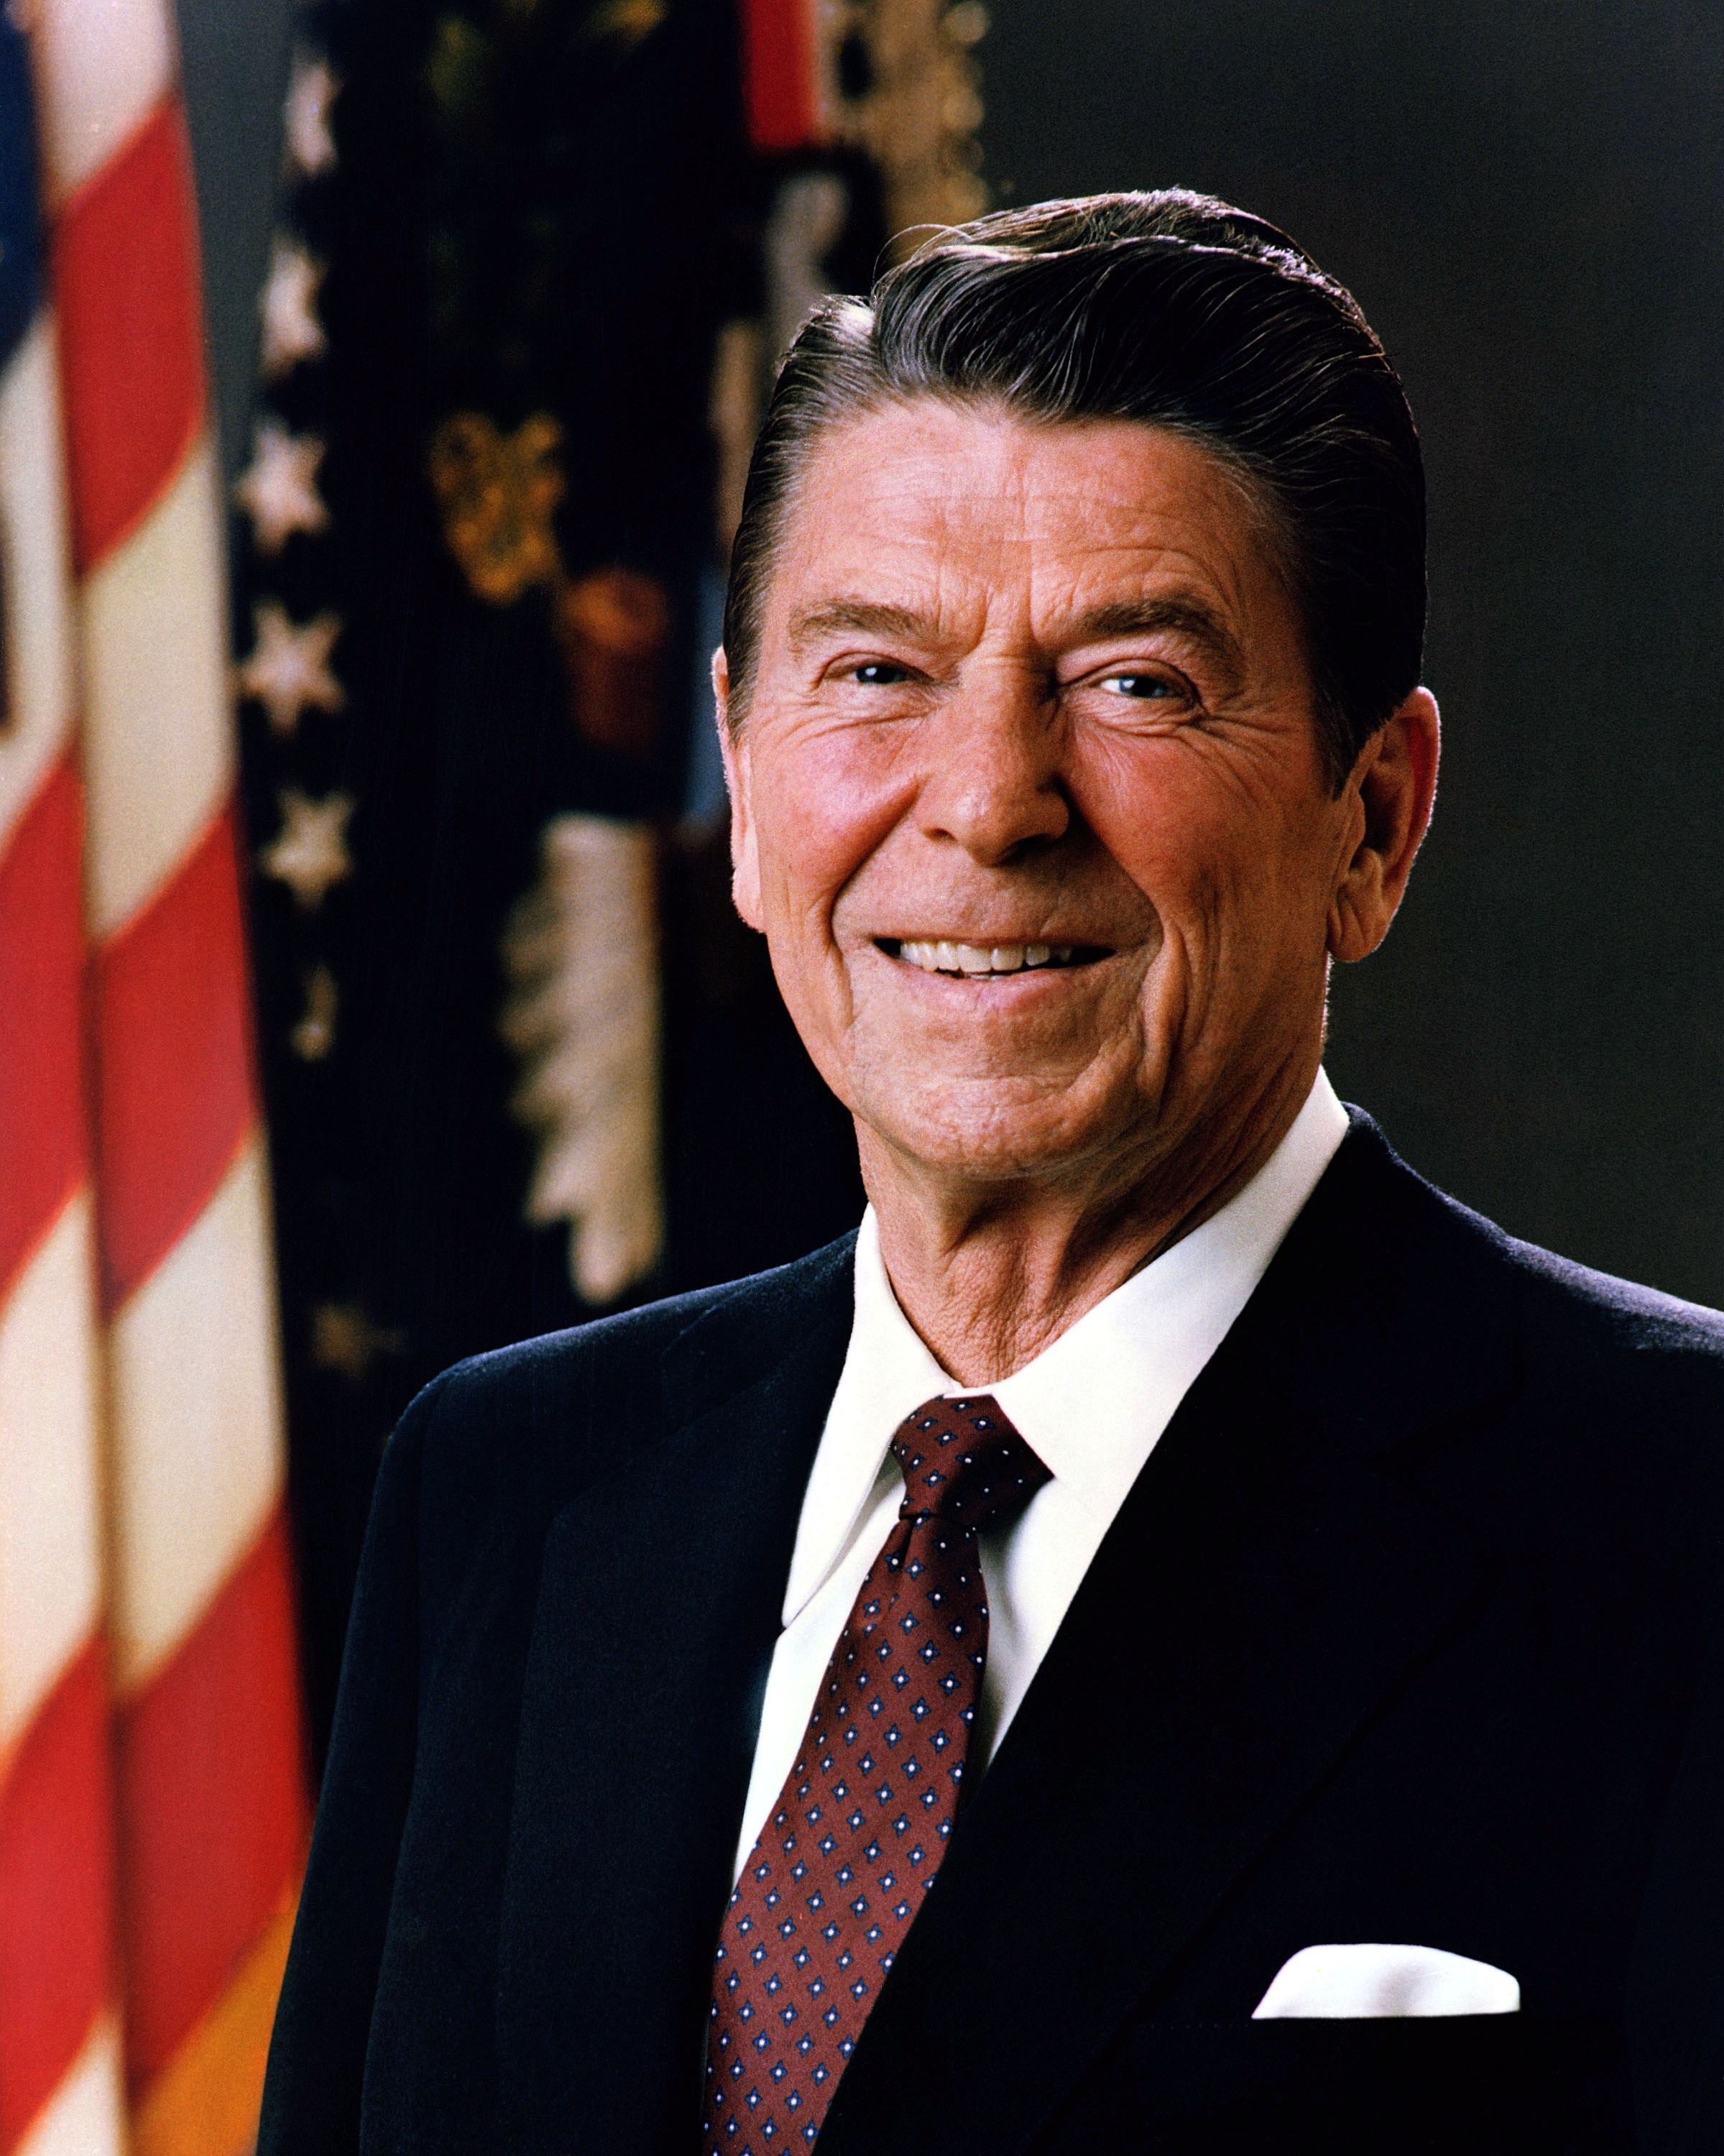 an overview of the role of ronald reagan as a president of the united states